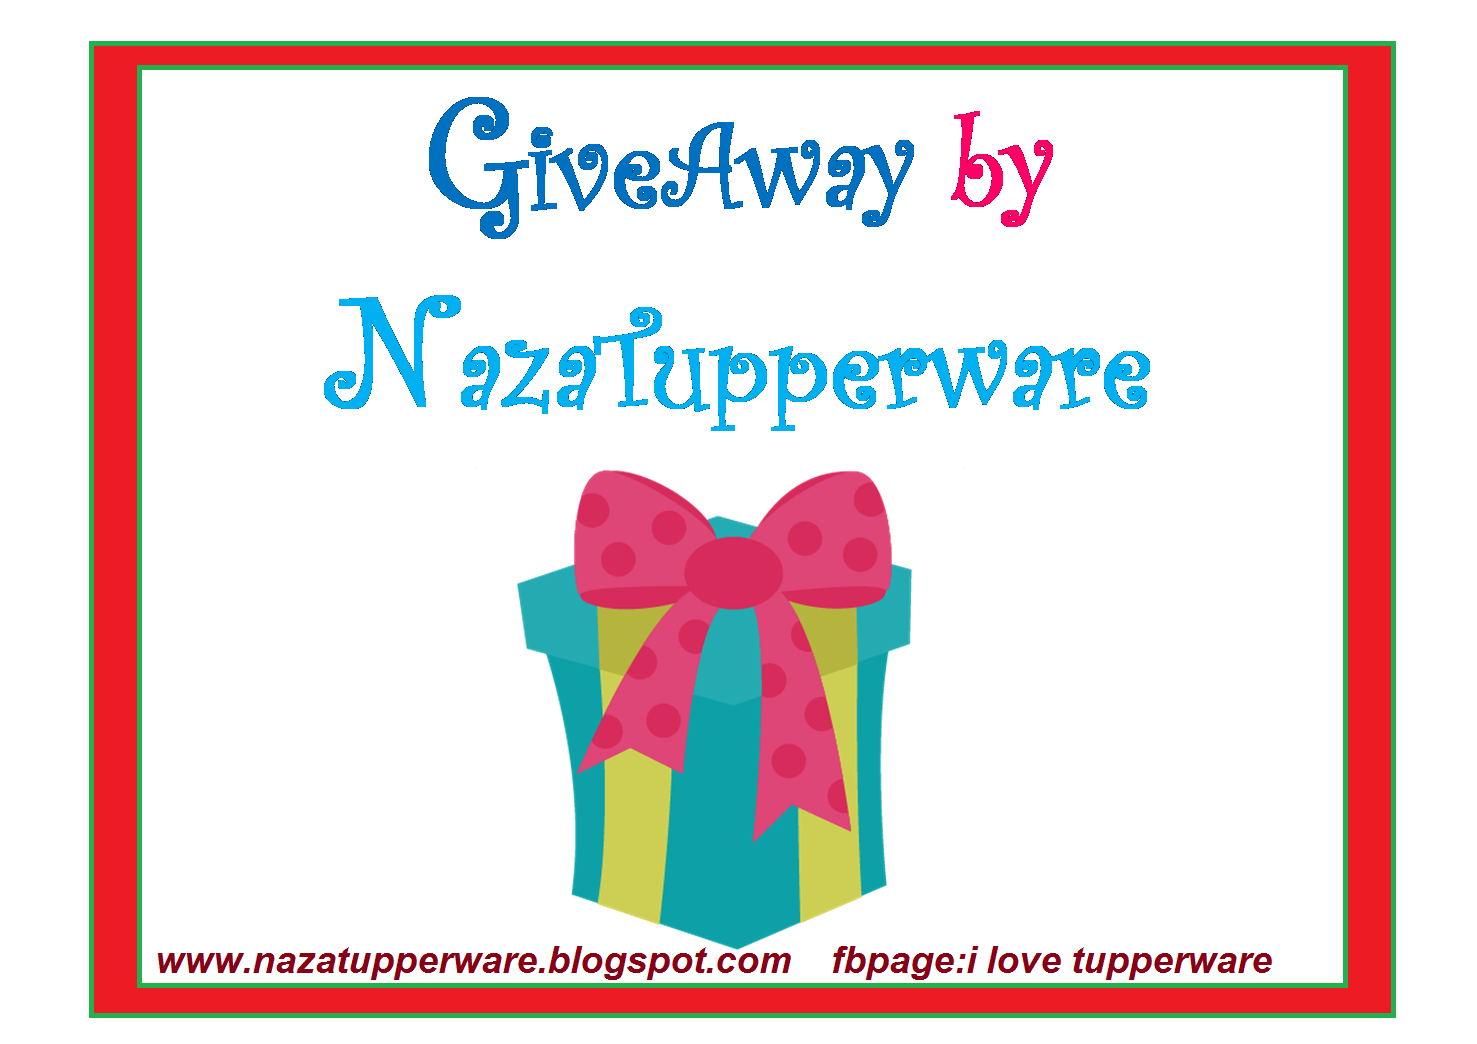 GiveAway By NazaTupperware! Jom Join!!